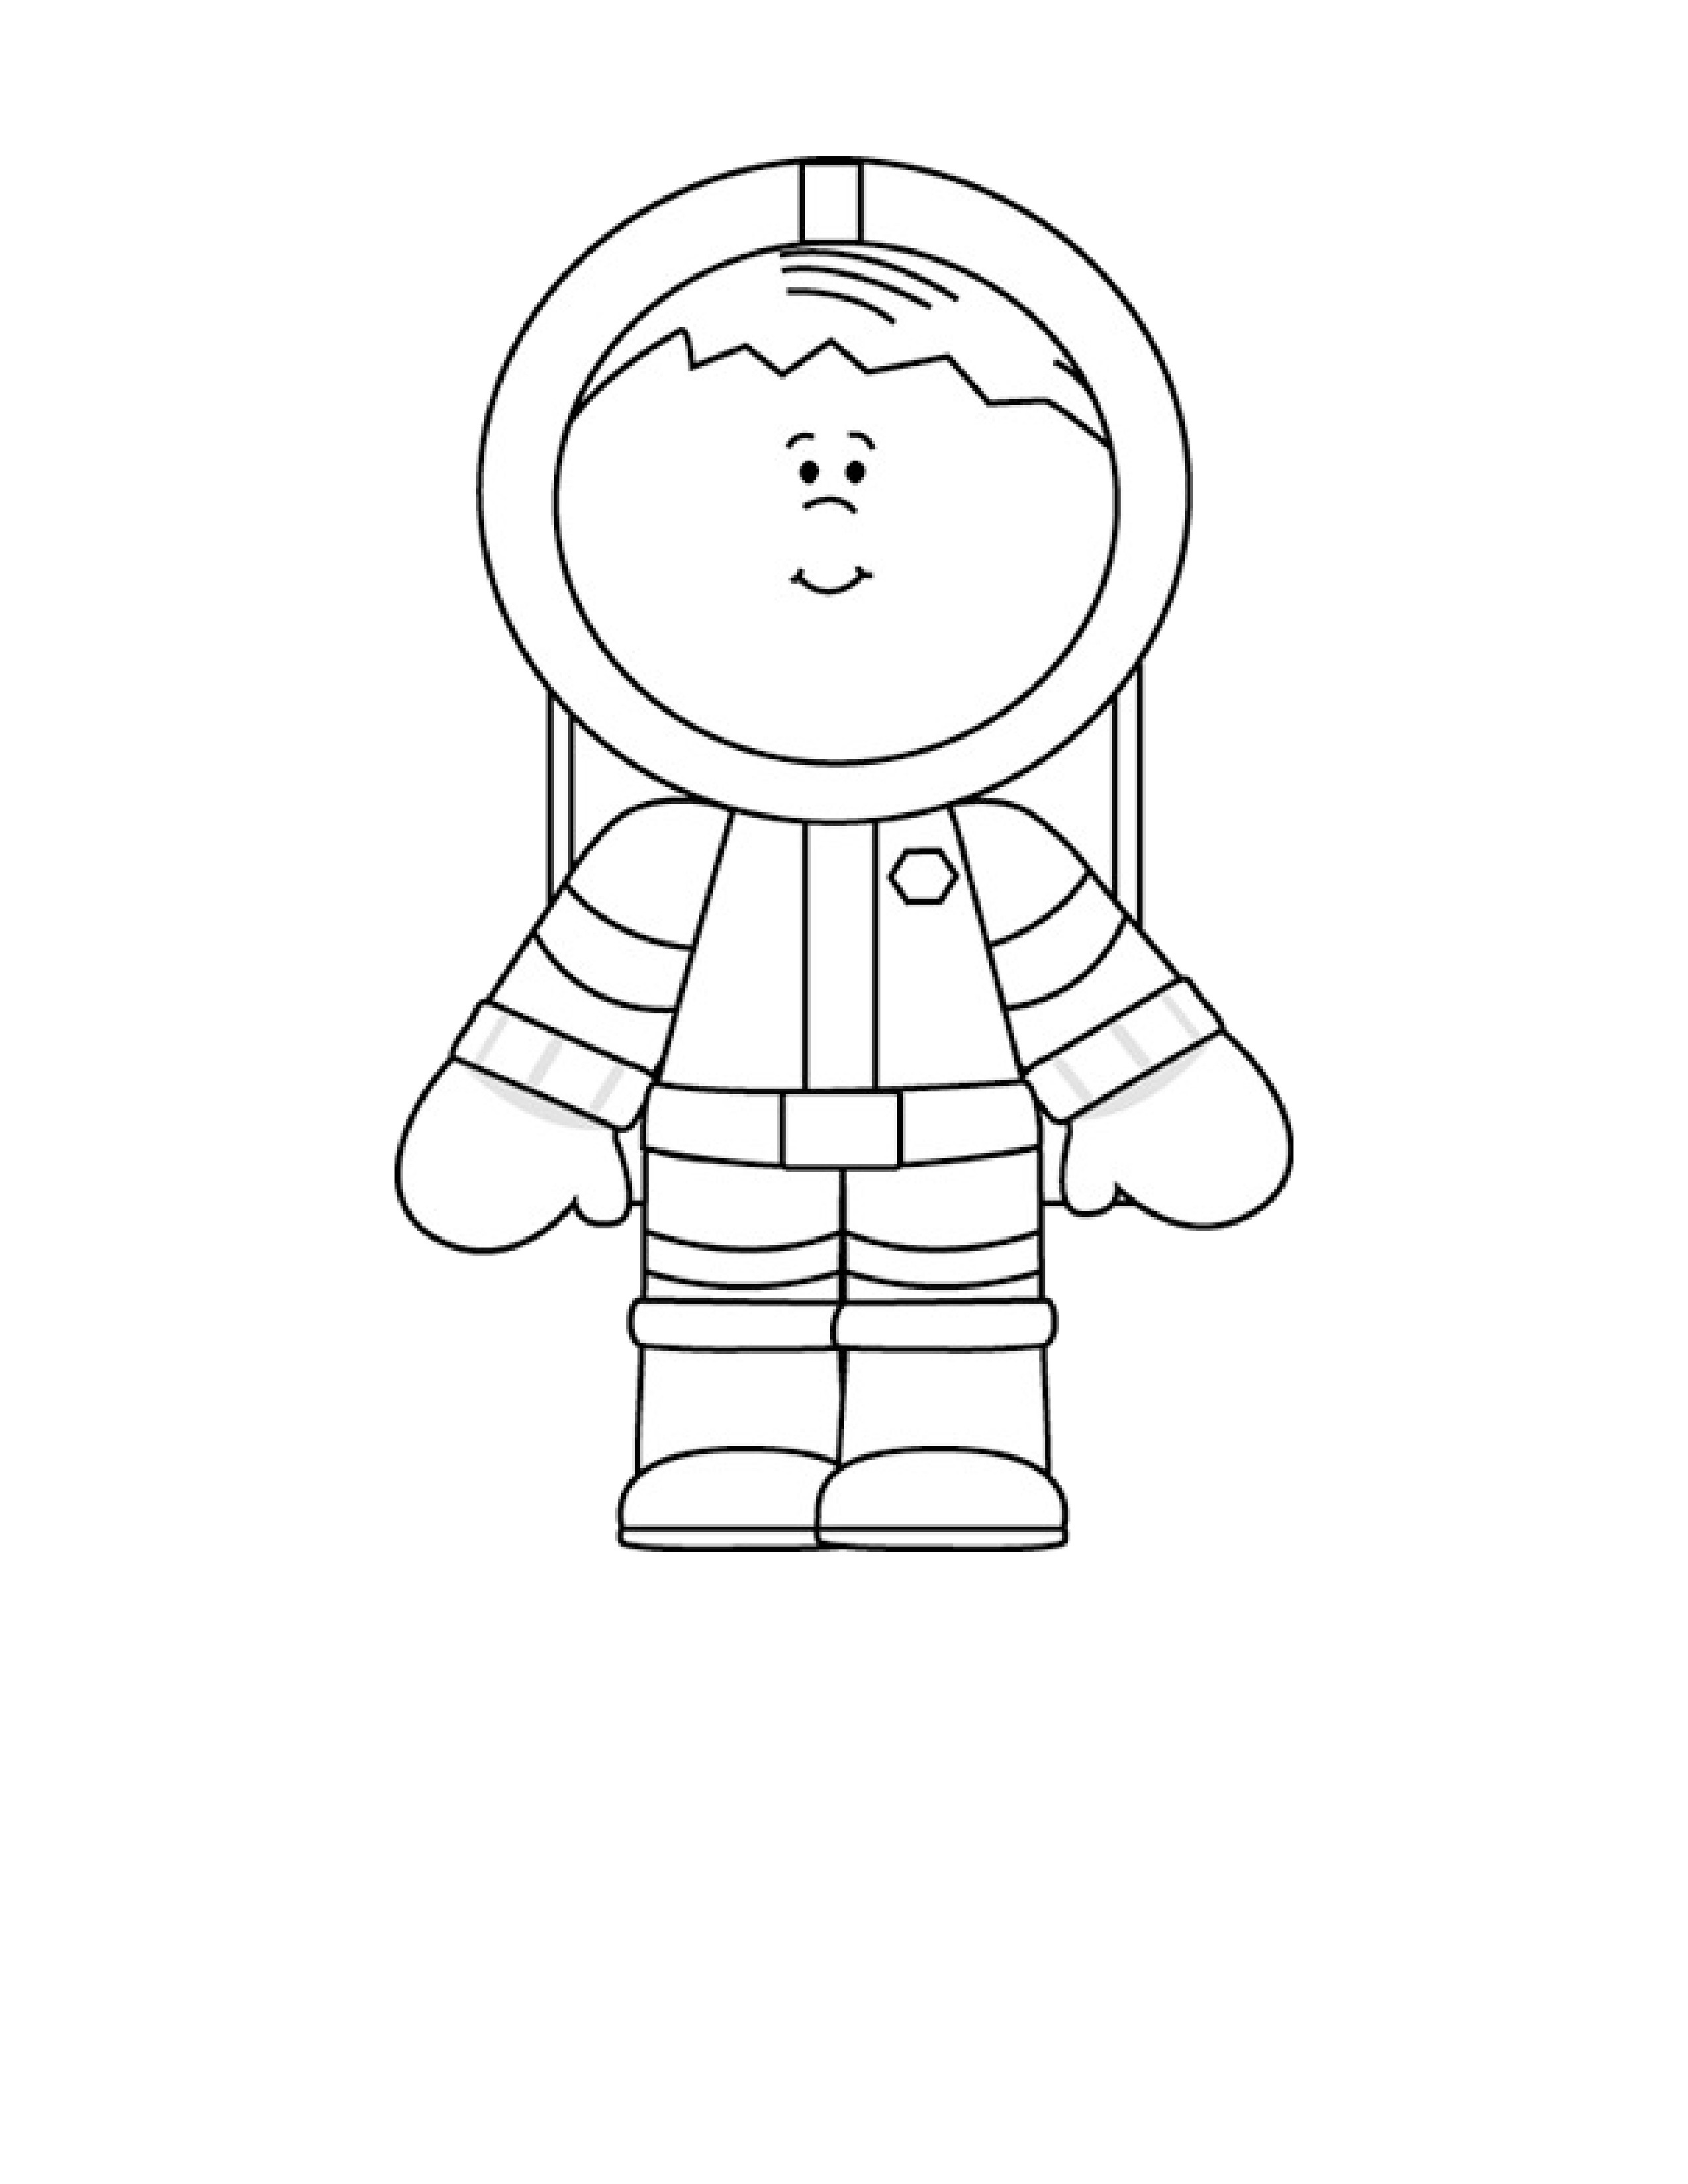 astronaut coloring pages (5) « Preschool and Homeschool